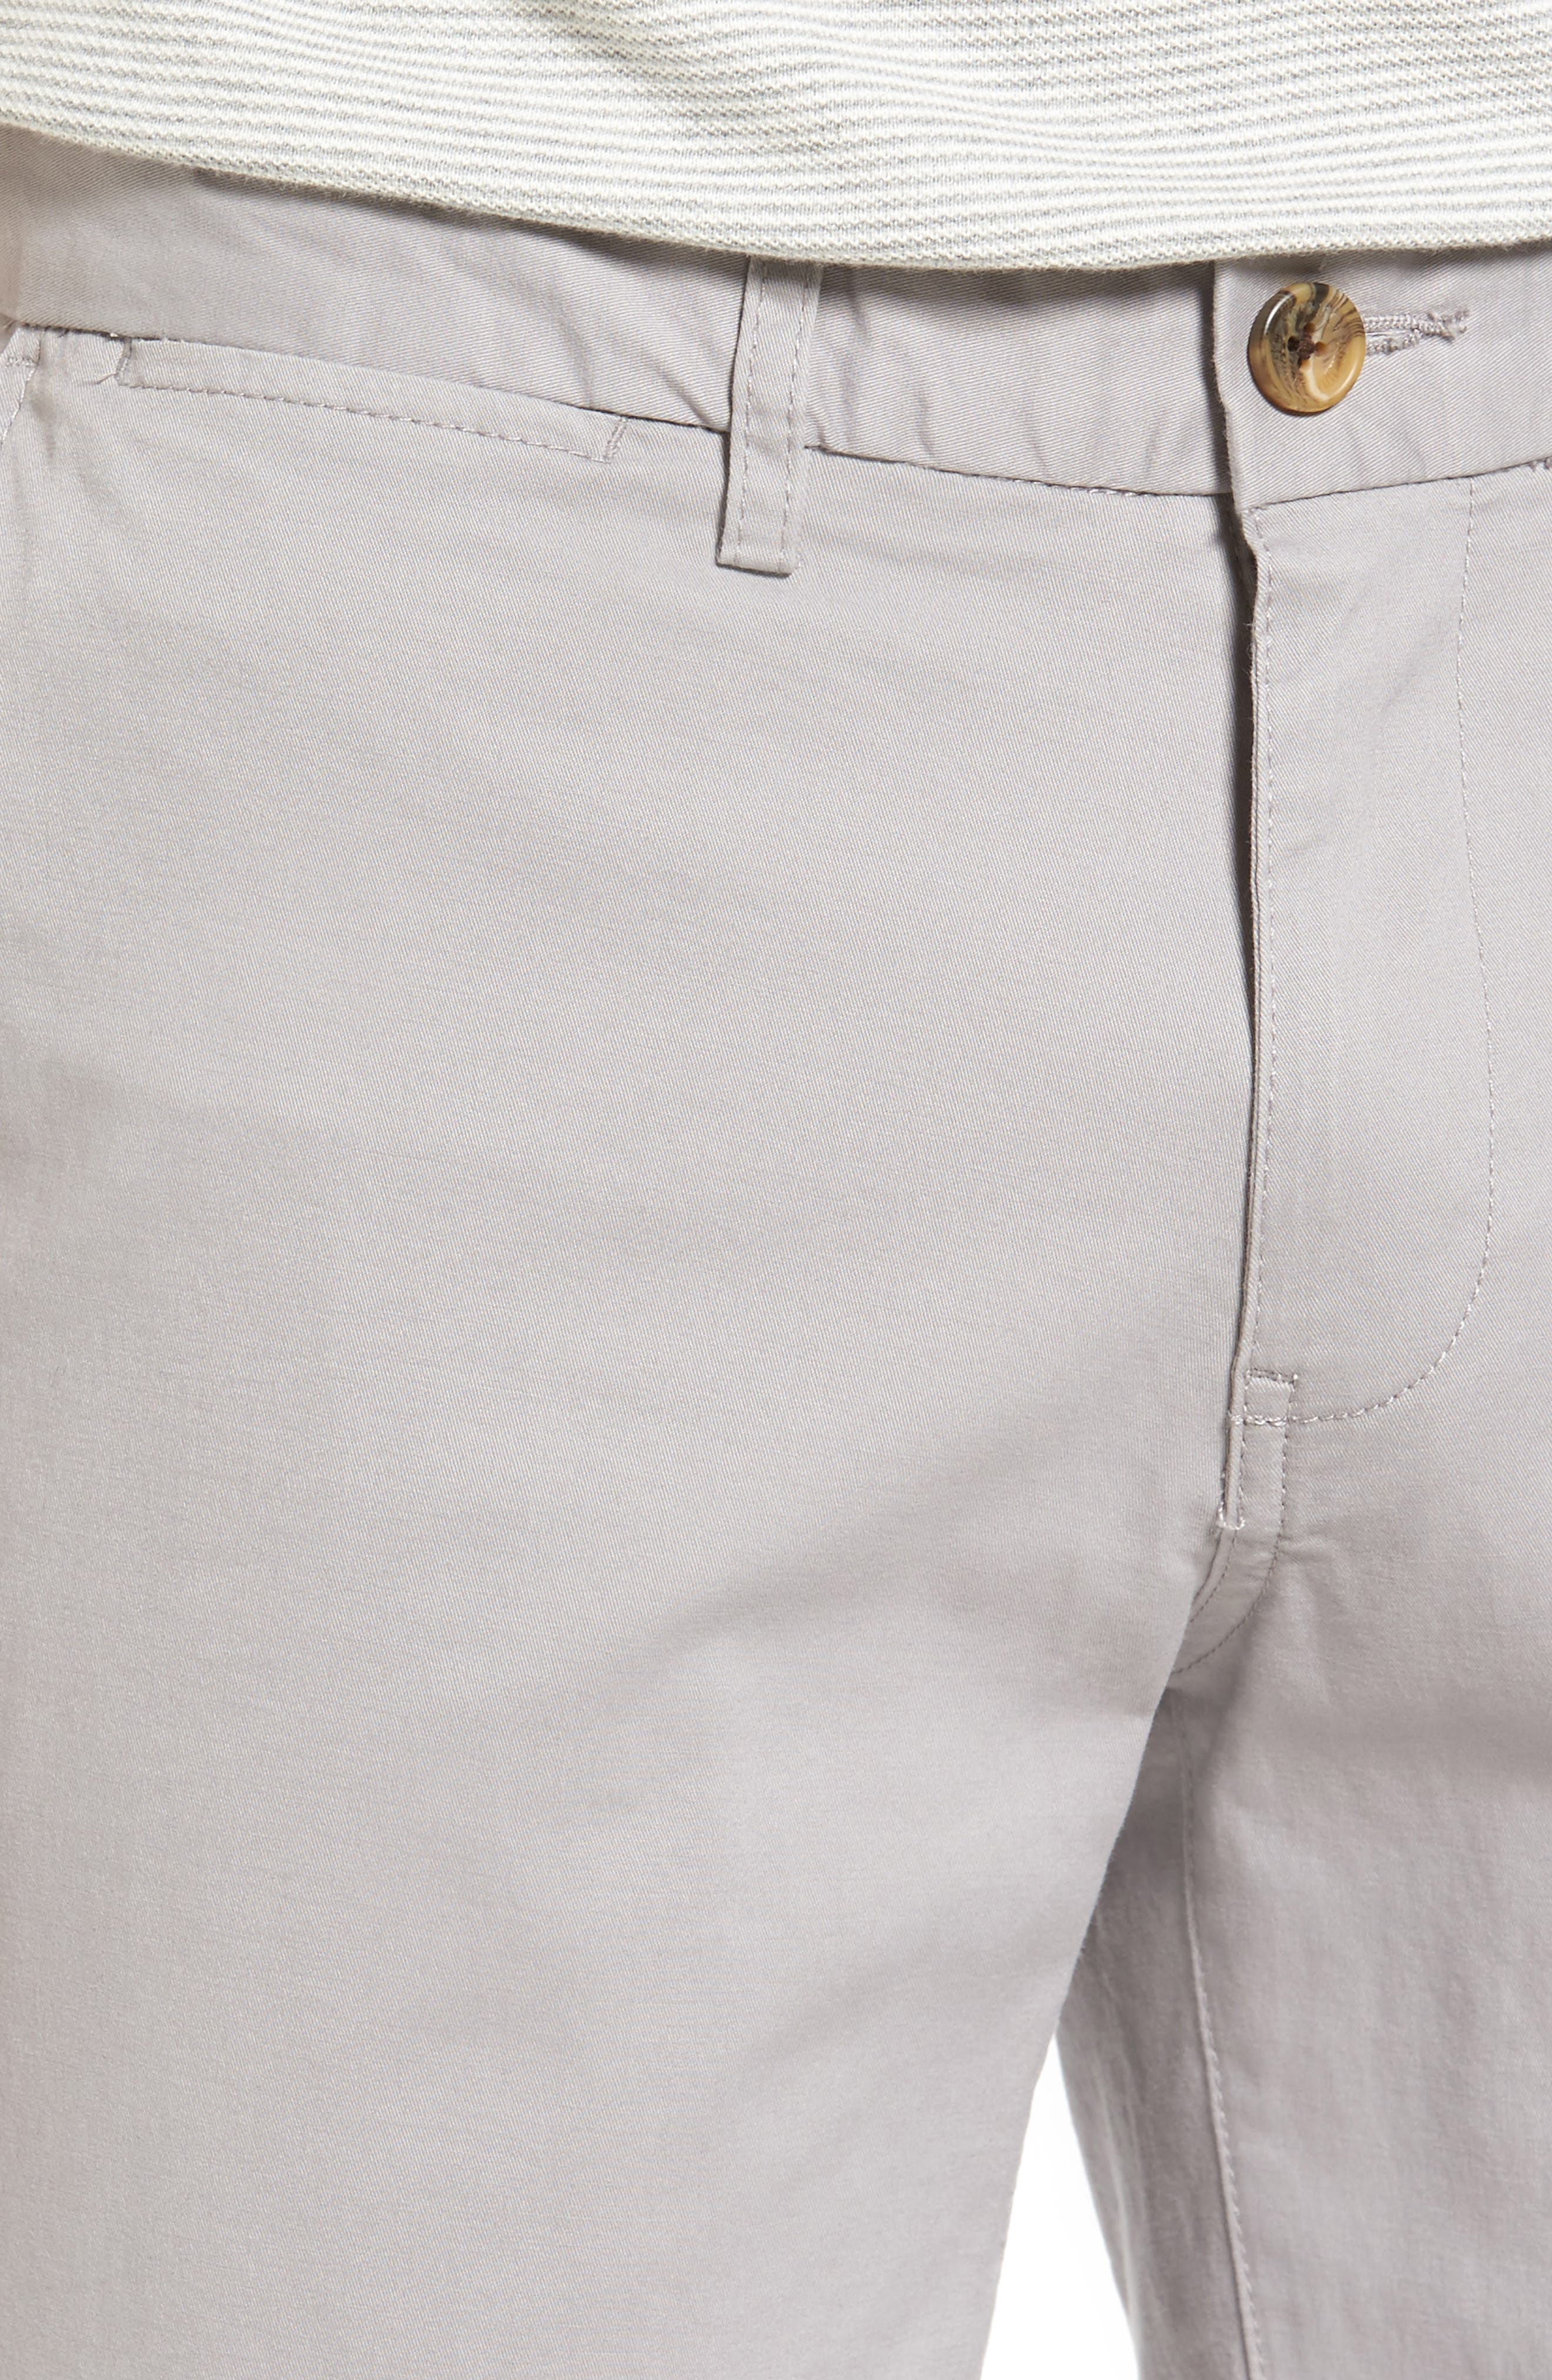 Slim Stretch Chino Shorts,                             Alternate thumbnail 4, color,                             020